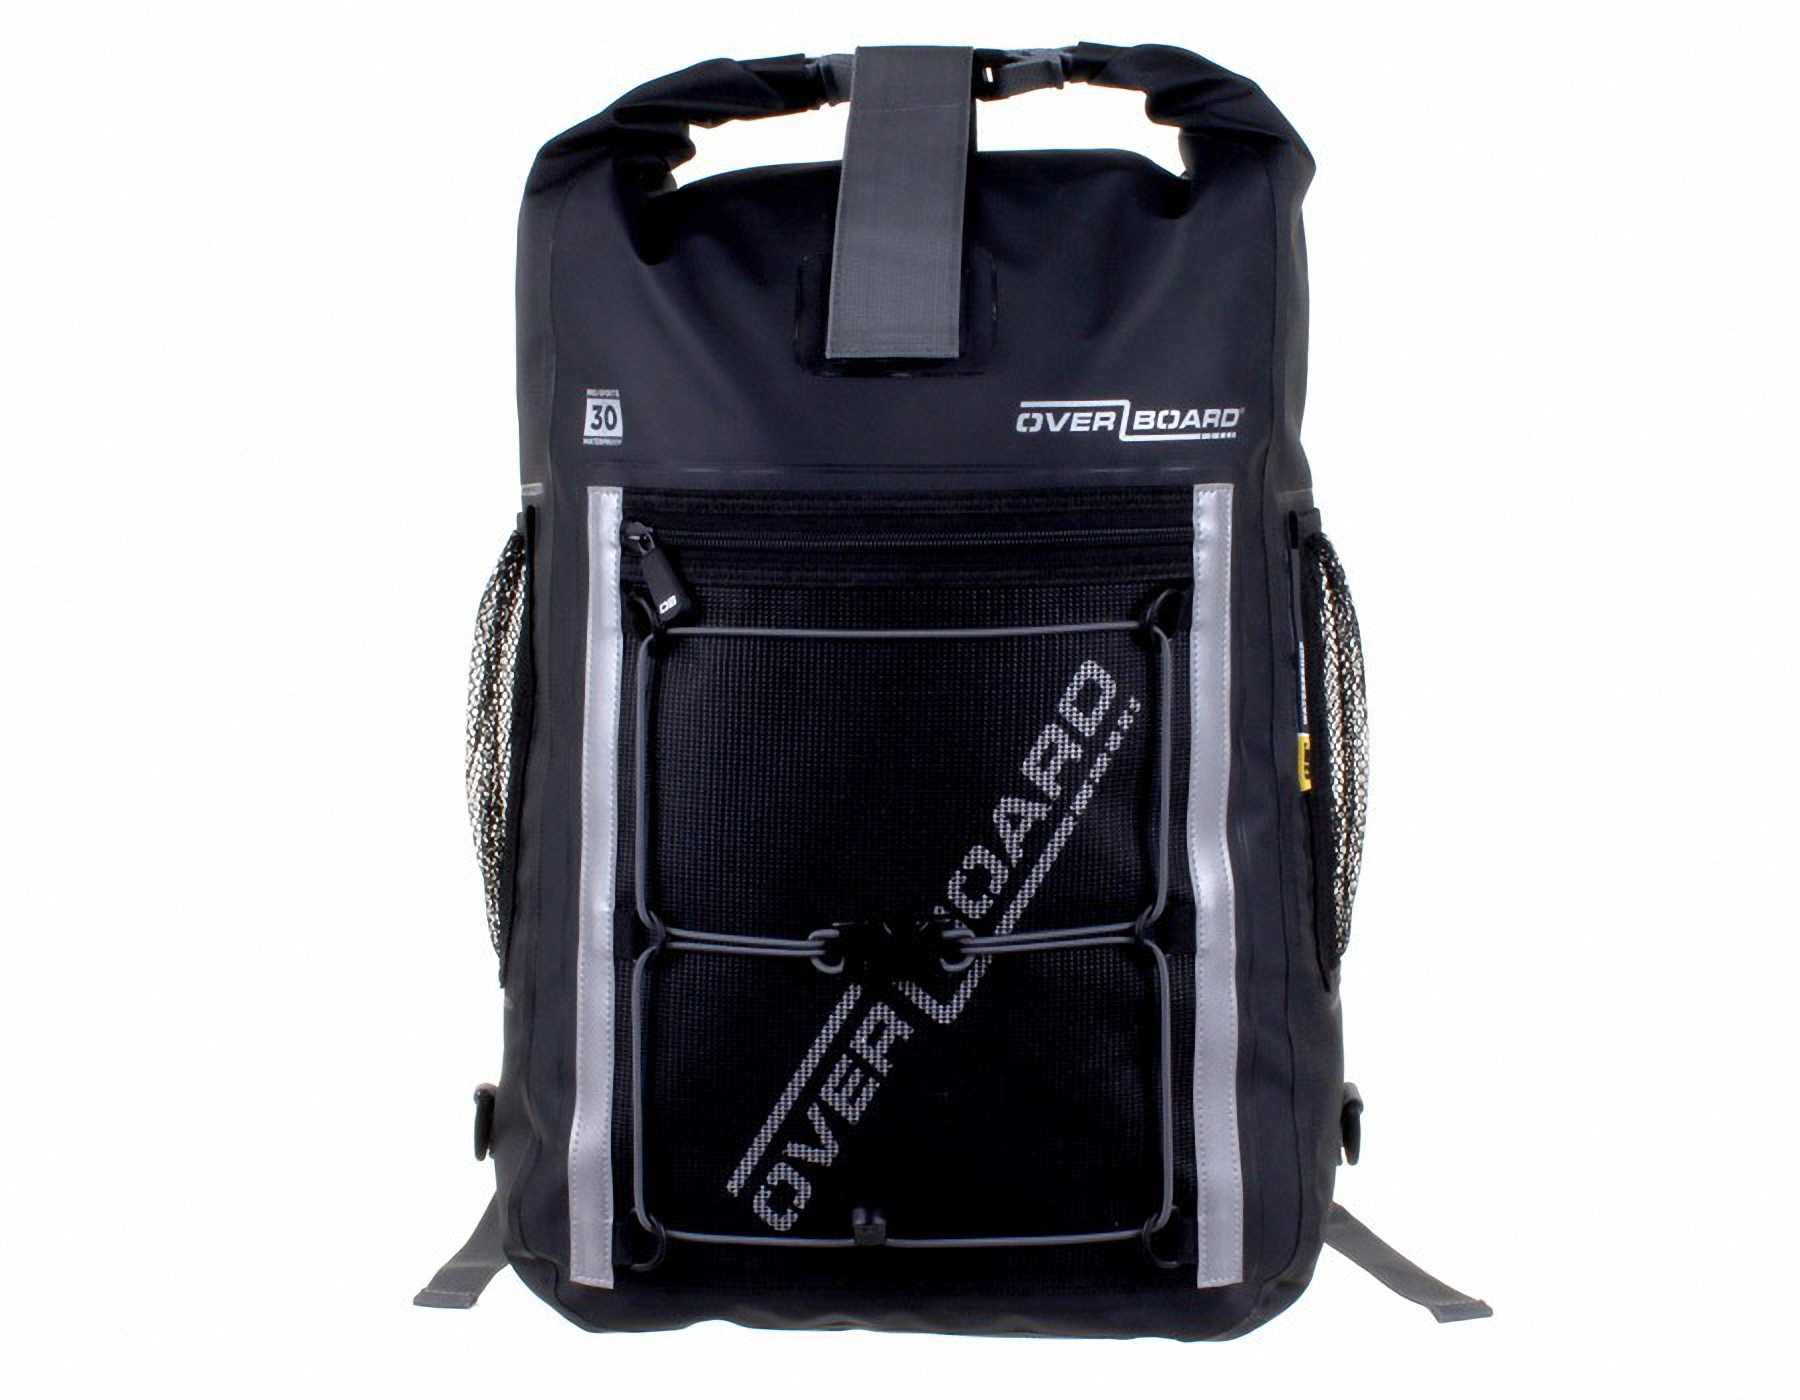 Водонепроницаемый рюкзак OverBoard OB1146BLK - Pro-Sports Waterproof Backpack - 30 литров. Фото 1